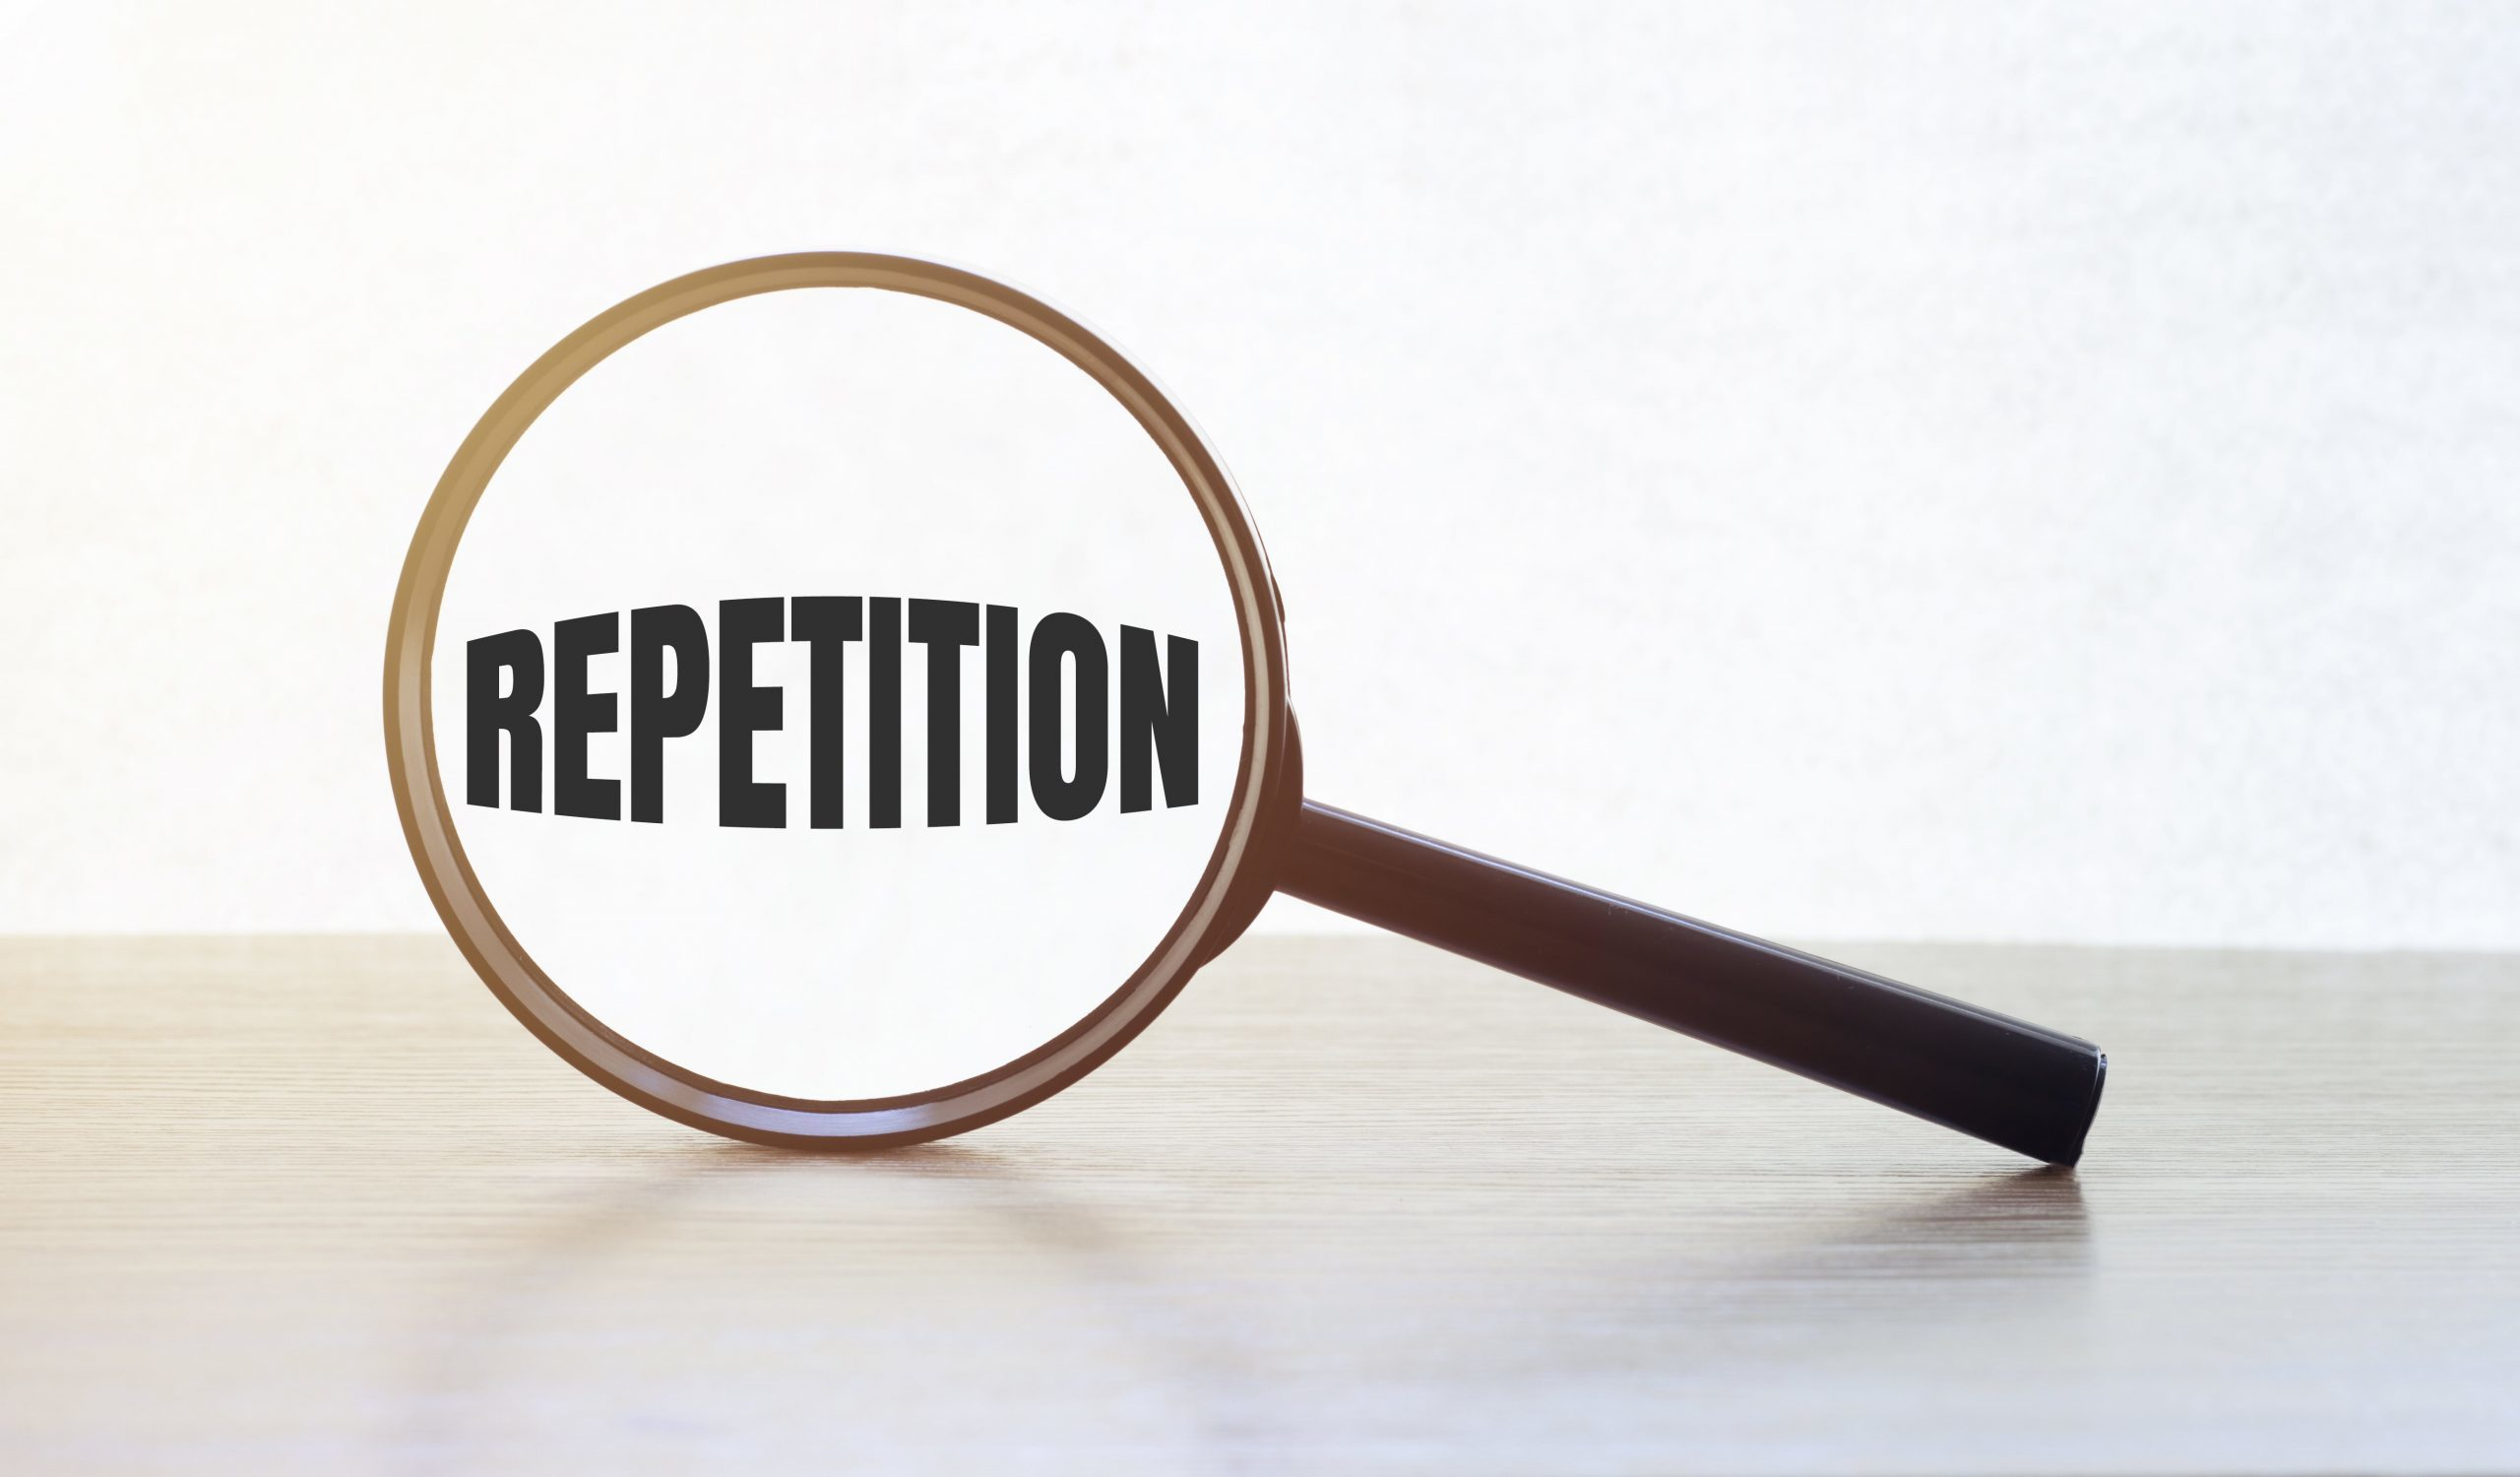 rule of repetition